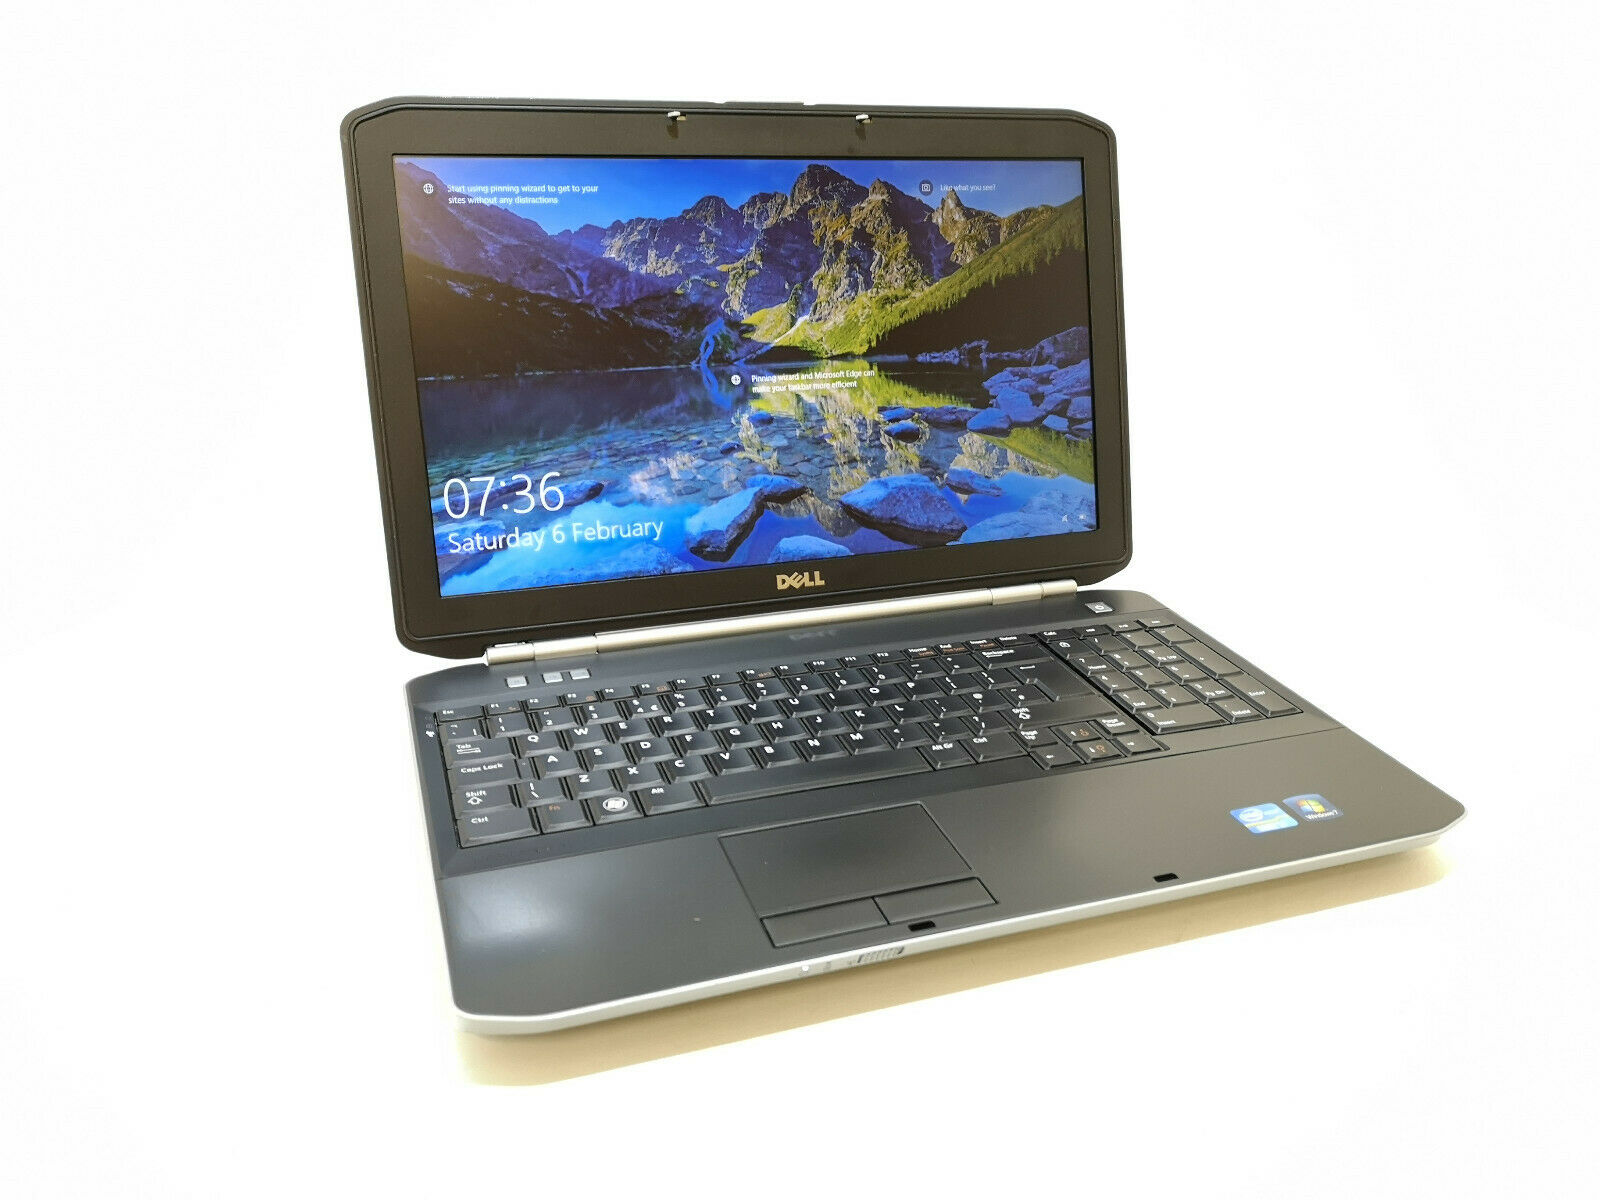 Dell Latitude E5520 No 6